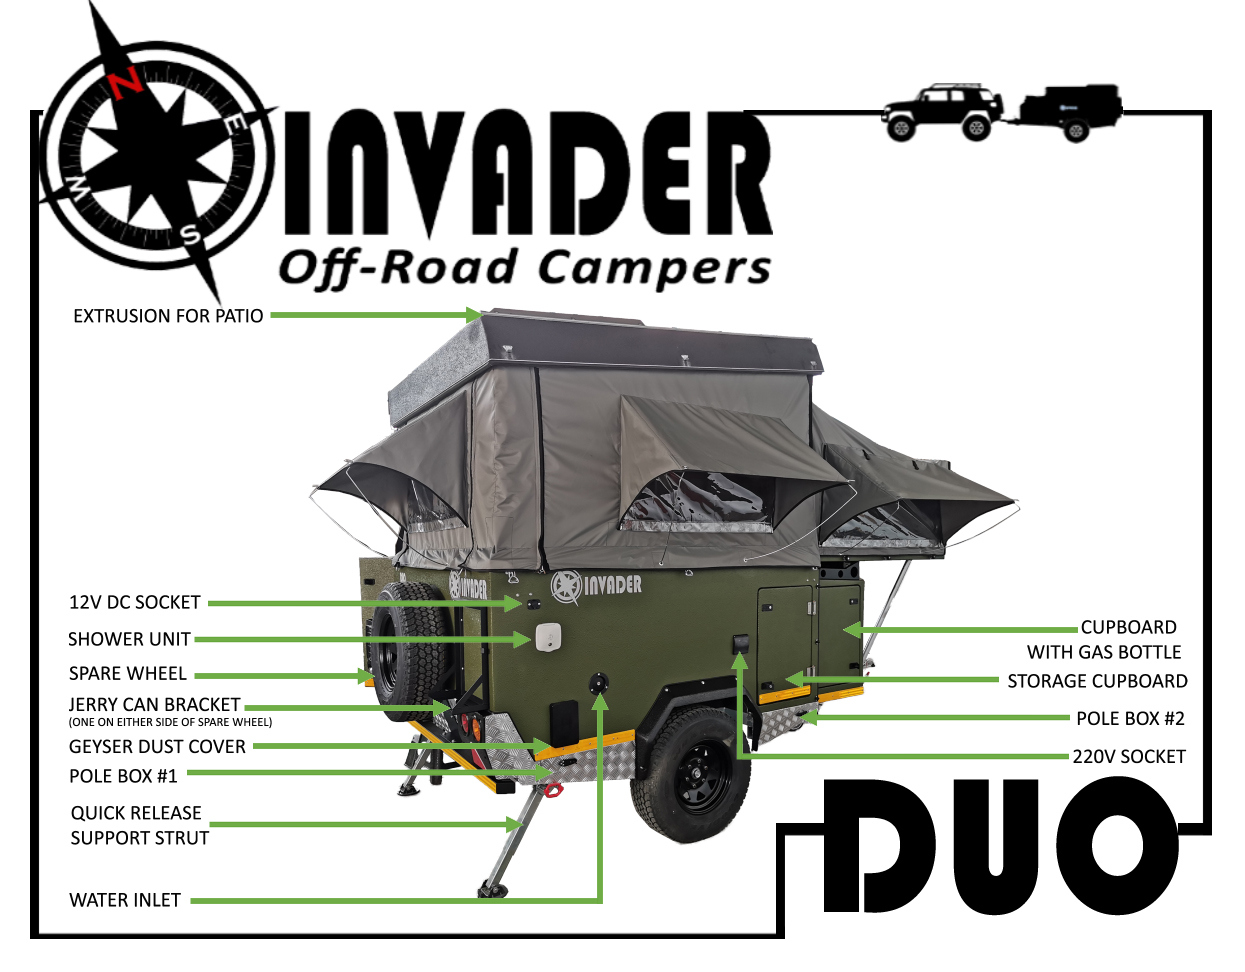 Invader Duo from the back